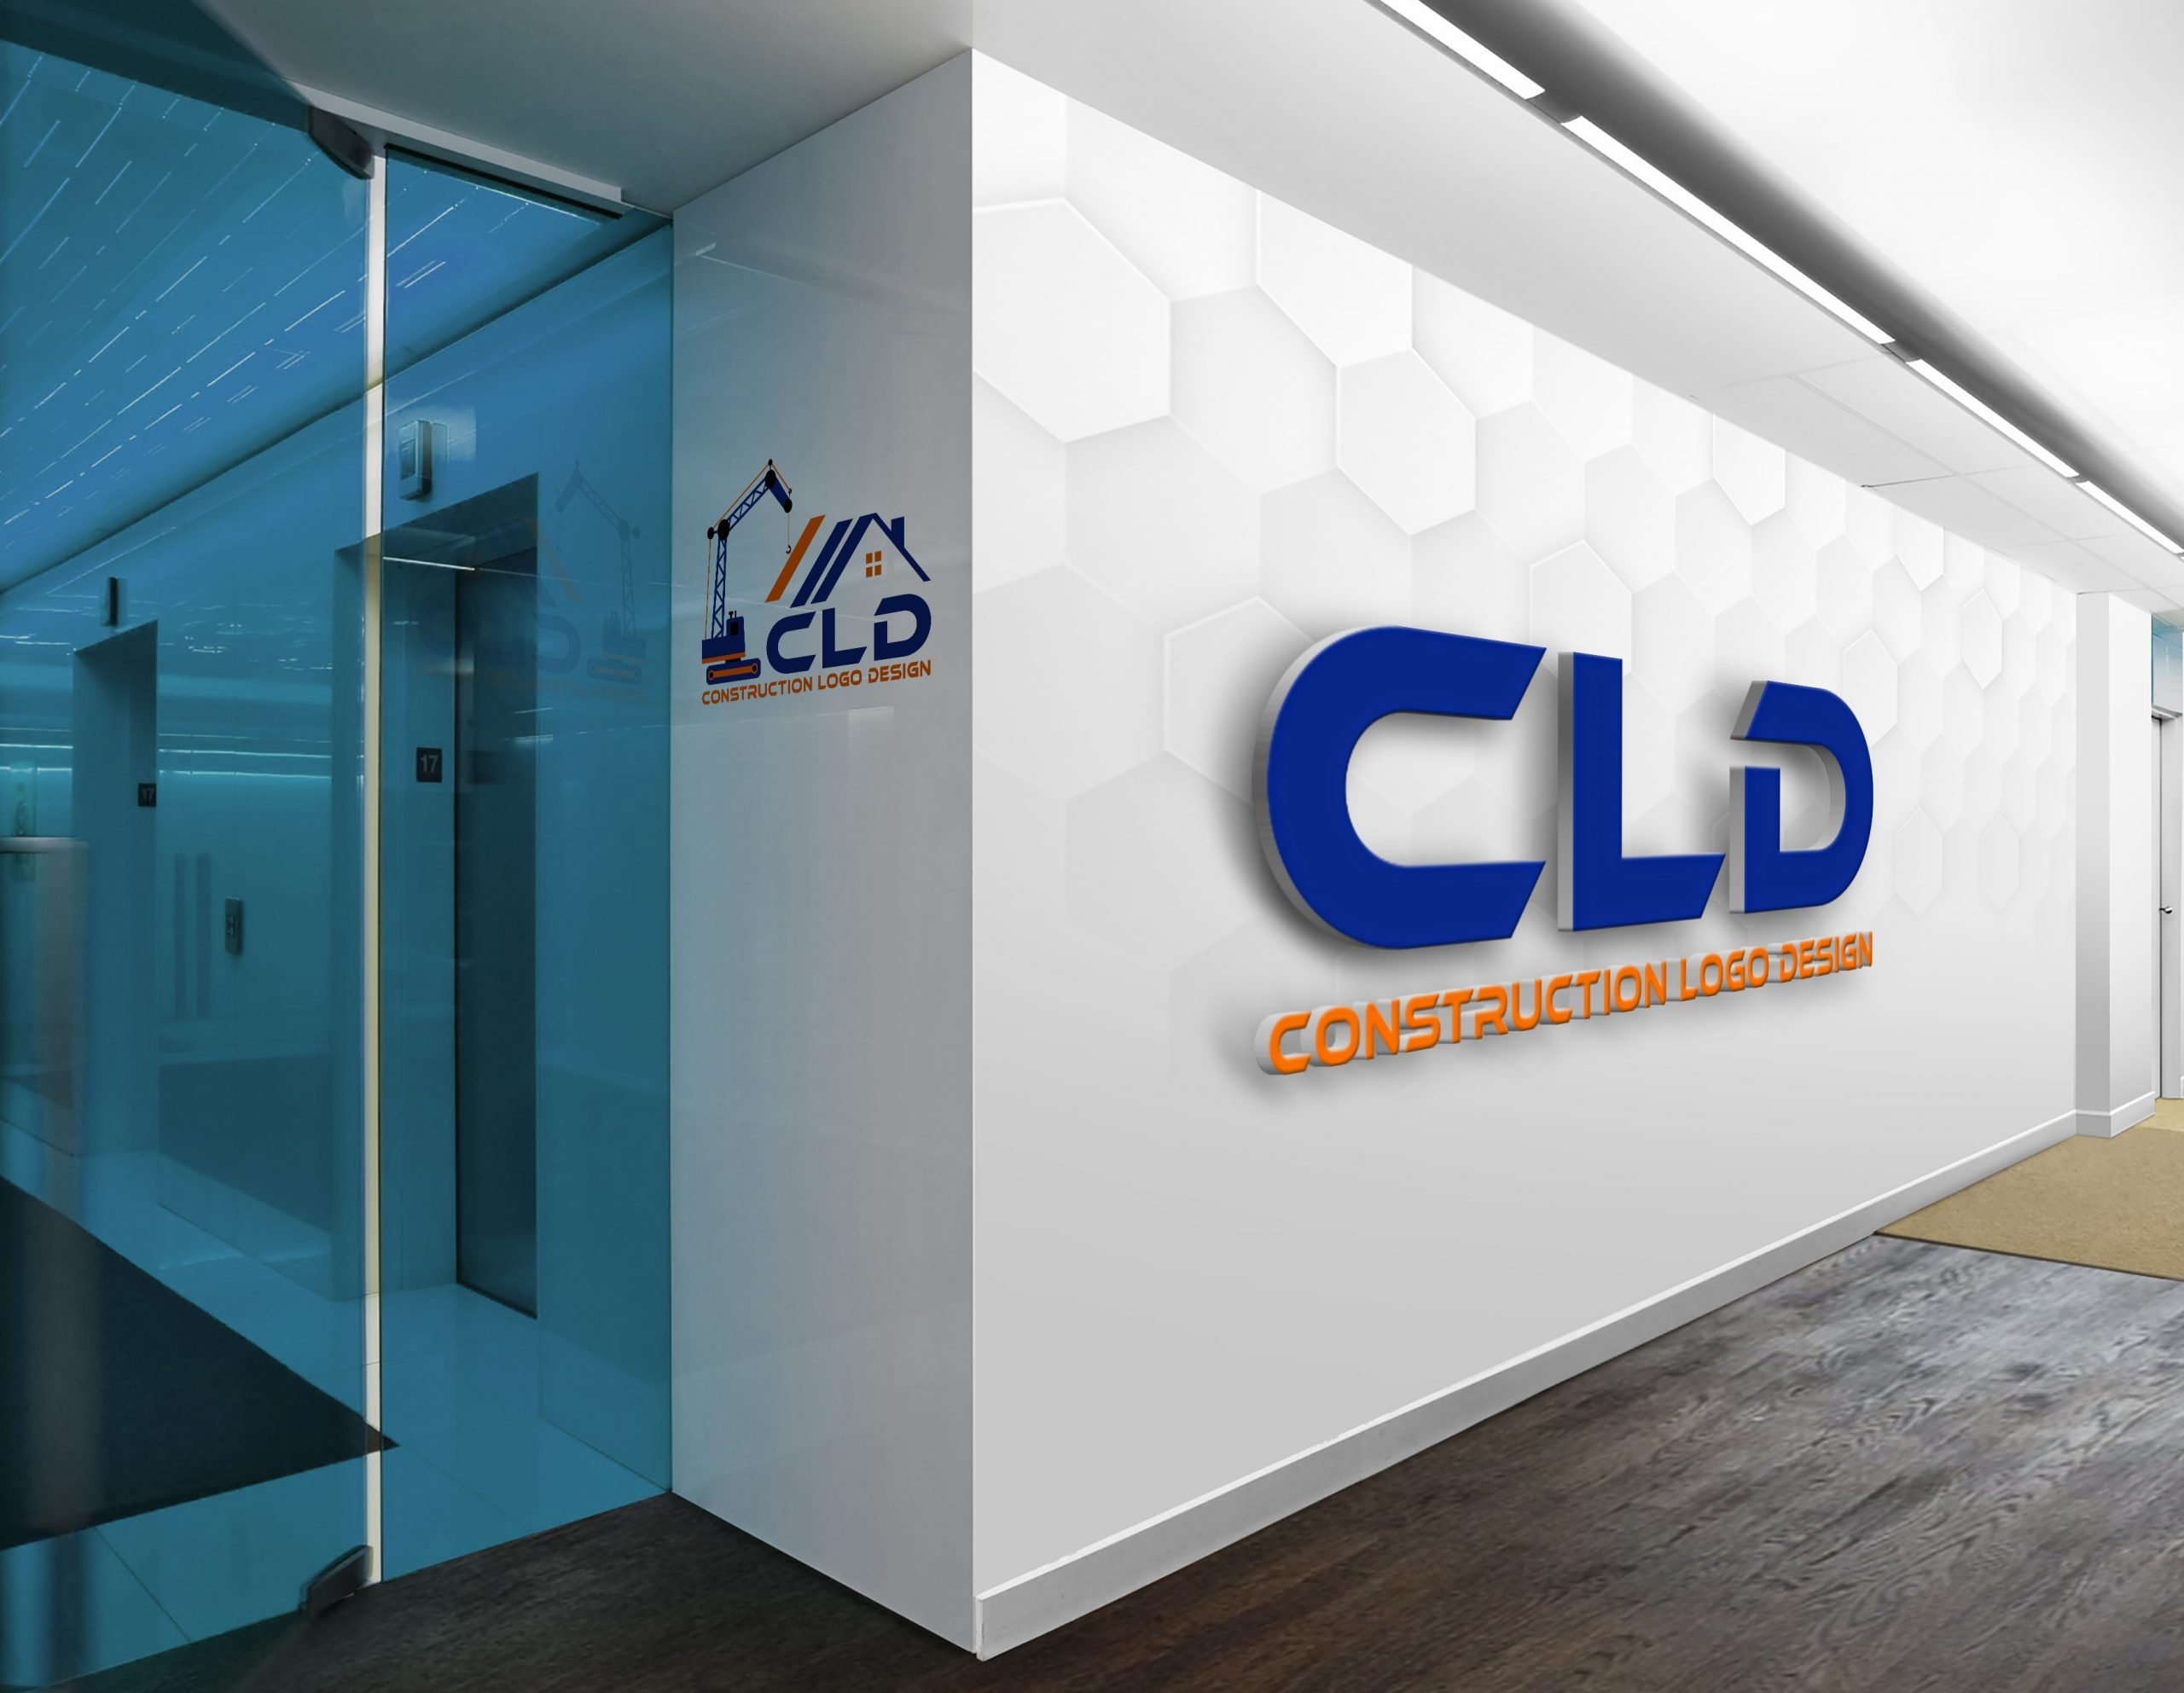 Construction Logo Design showcase on wall